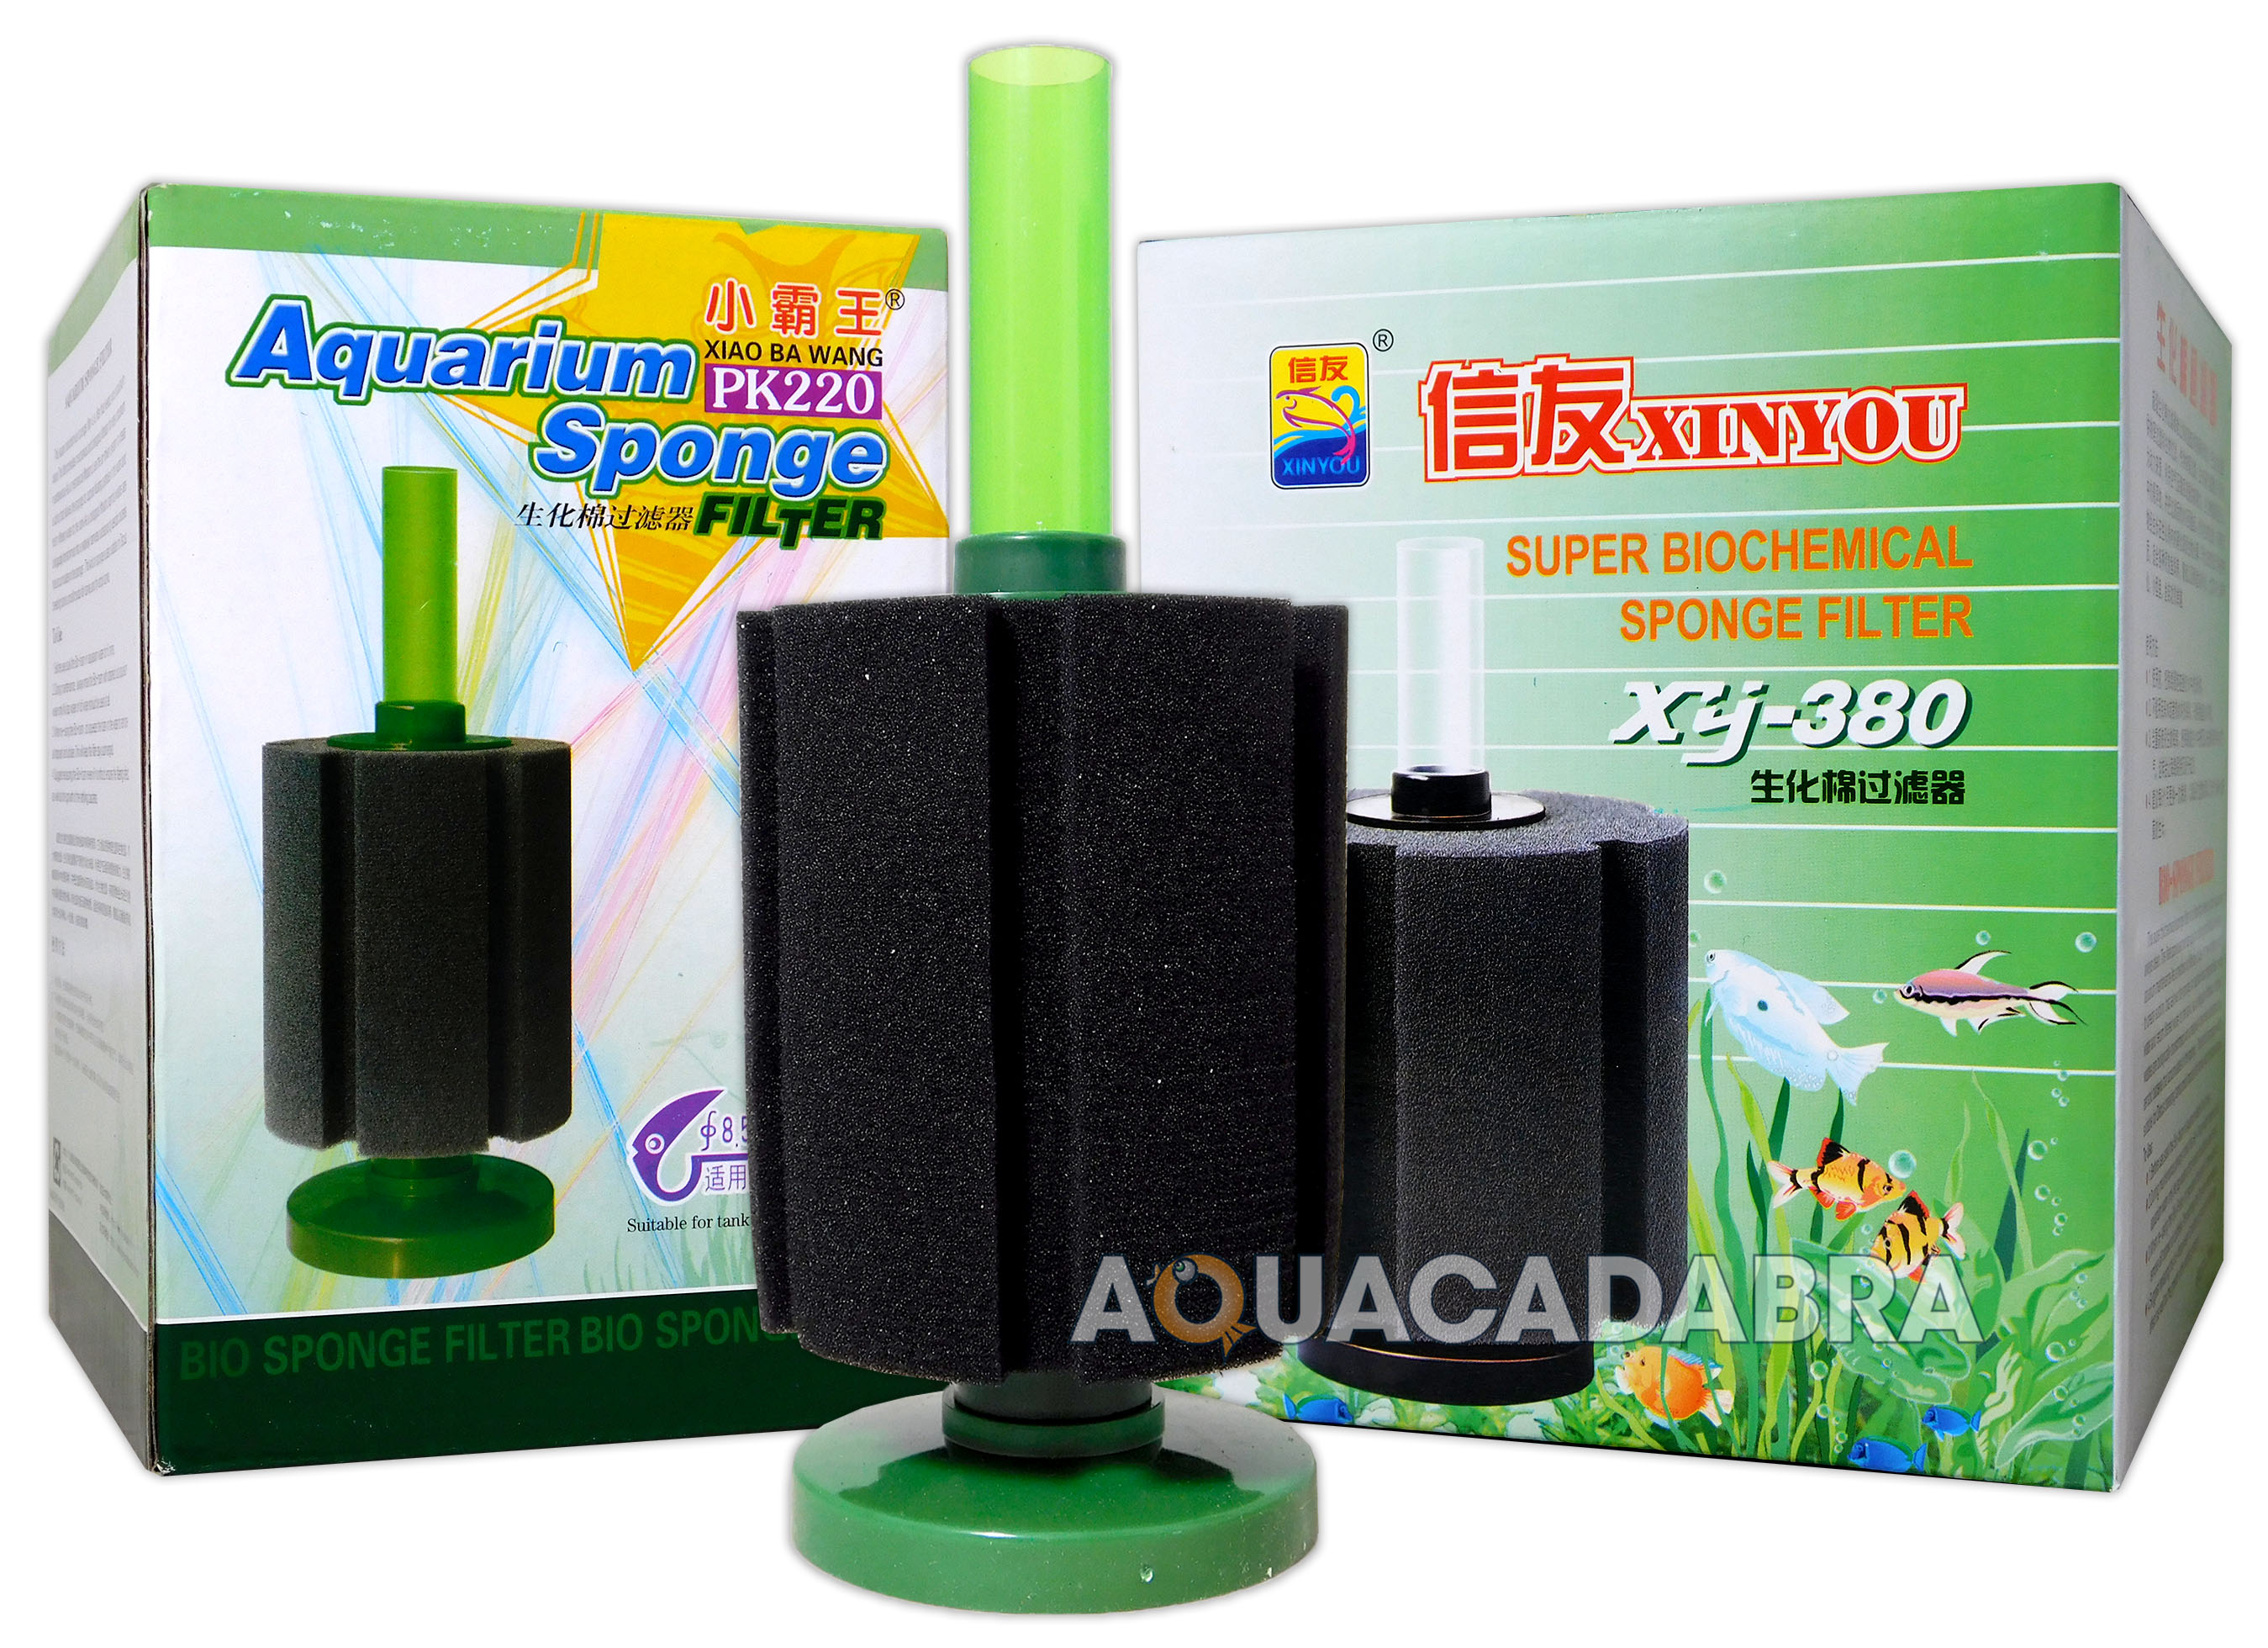 Aquacadabra bio foam sponge filters in aquarium breeding for Fish tank filtration